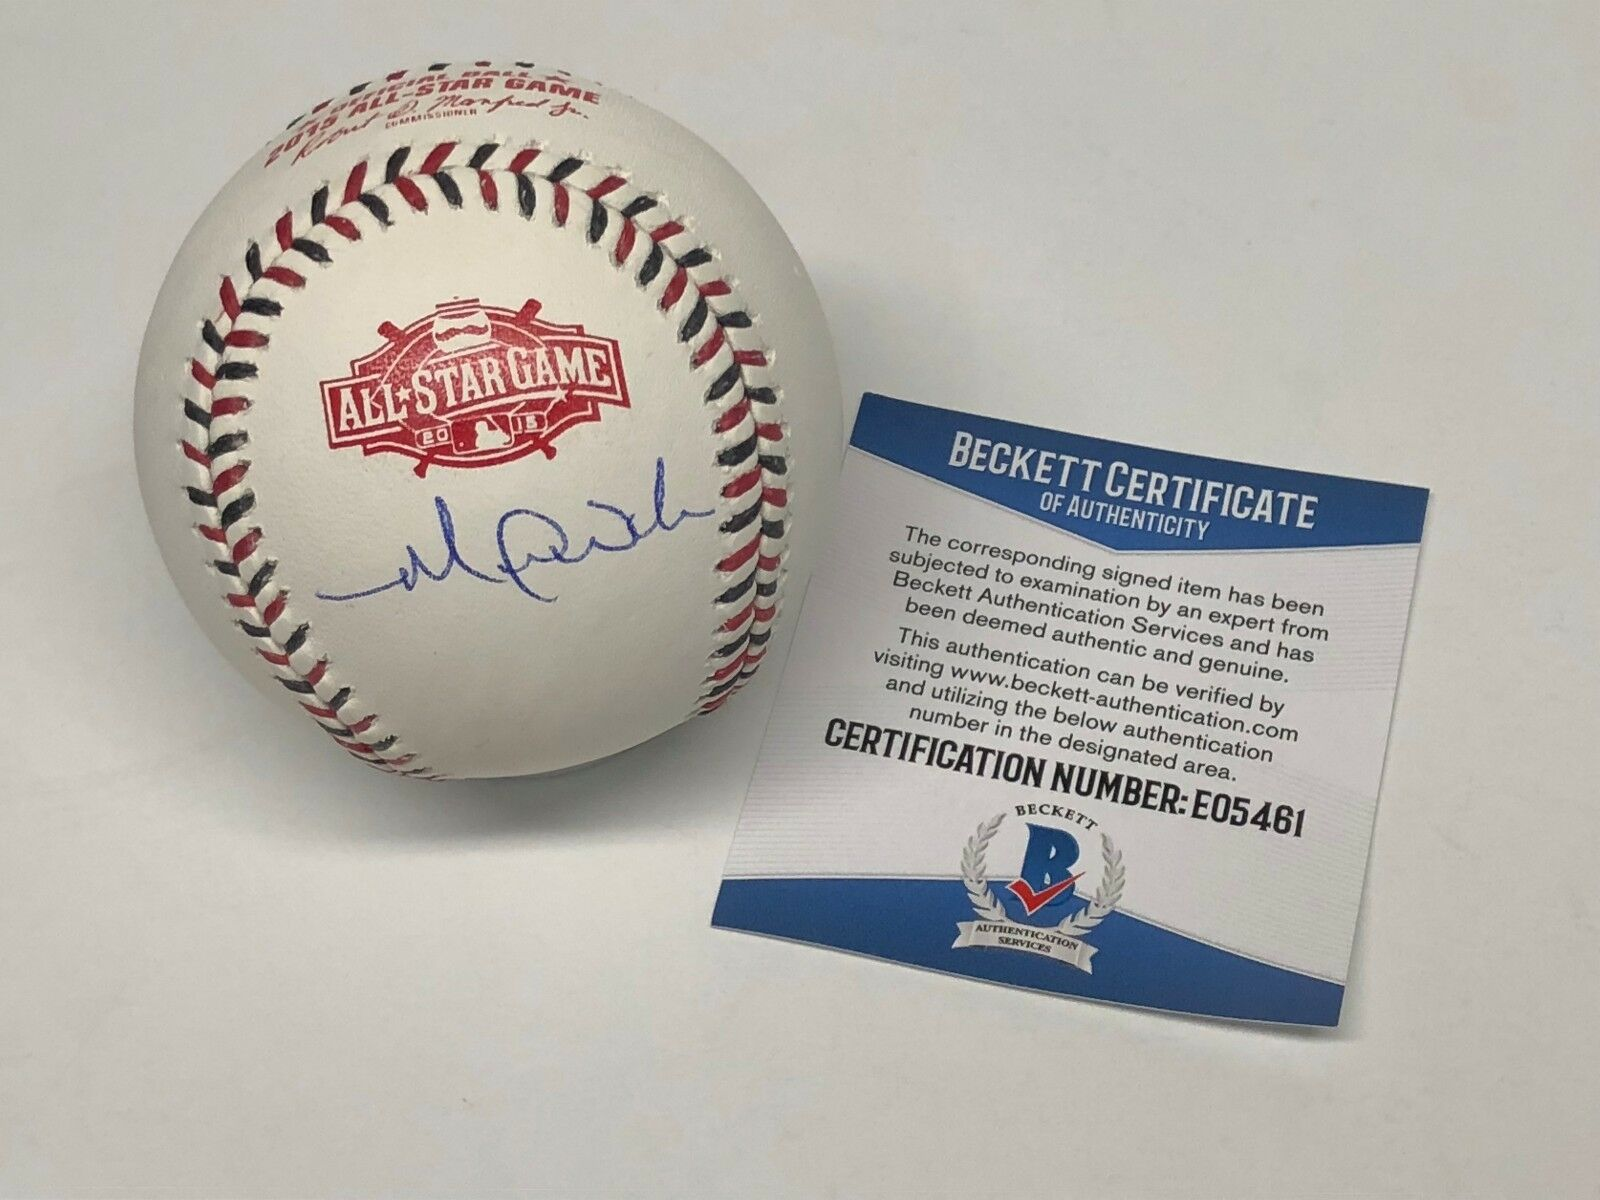 Michael Wacha Signed 2015 All-Star Major League Baseball ASMLB BAS E05461